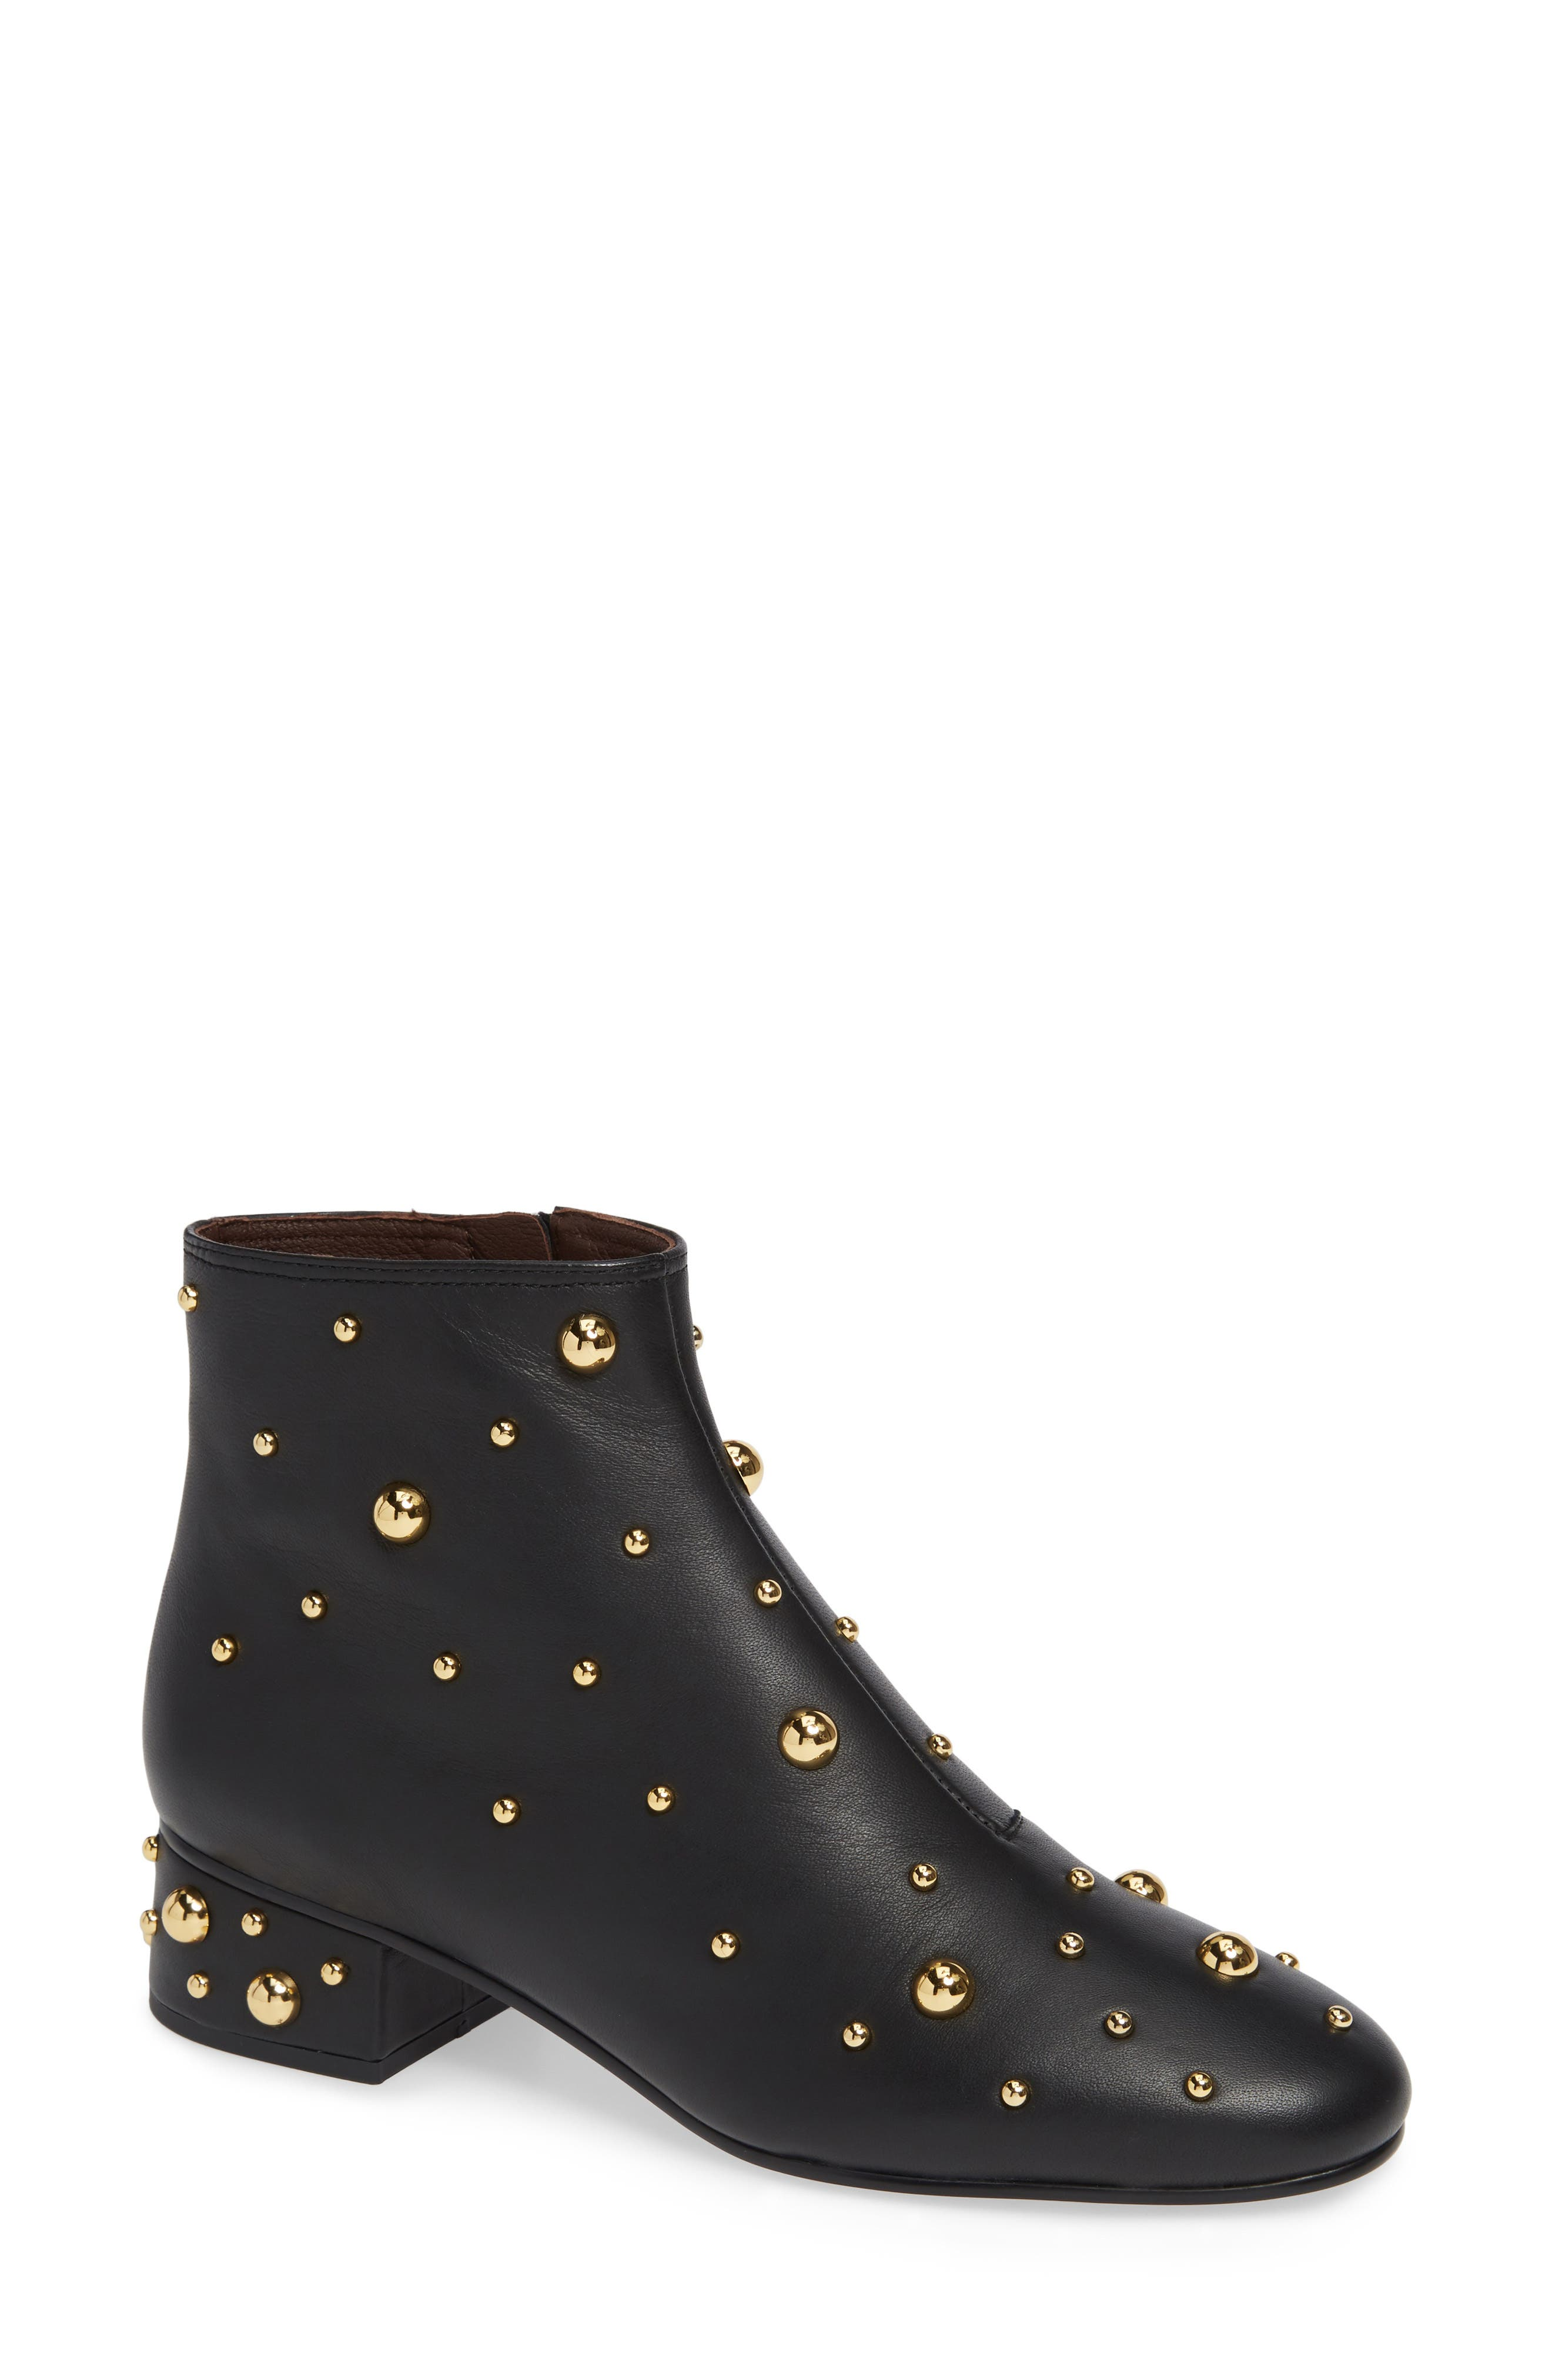 SEE BY CHLOÉ Abby Studded Bootie, Main, color, 001